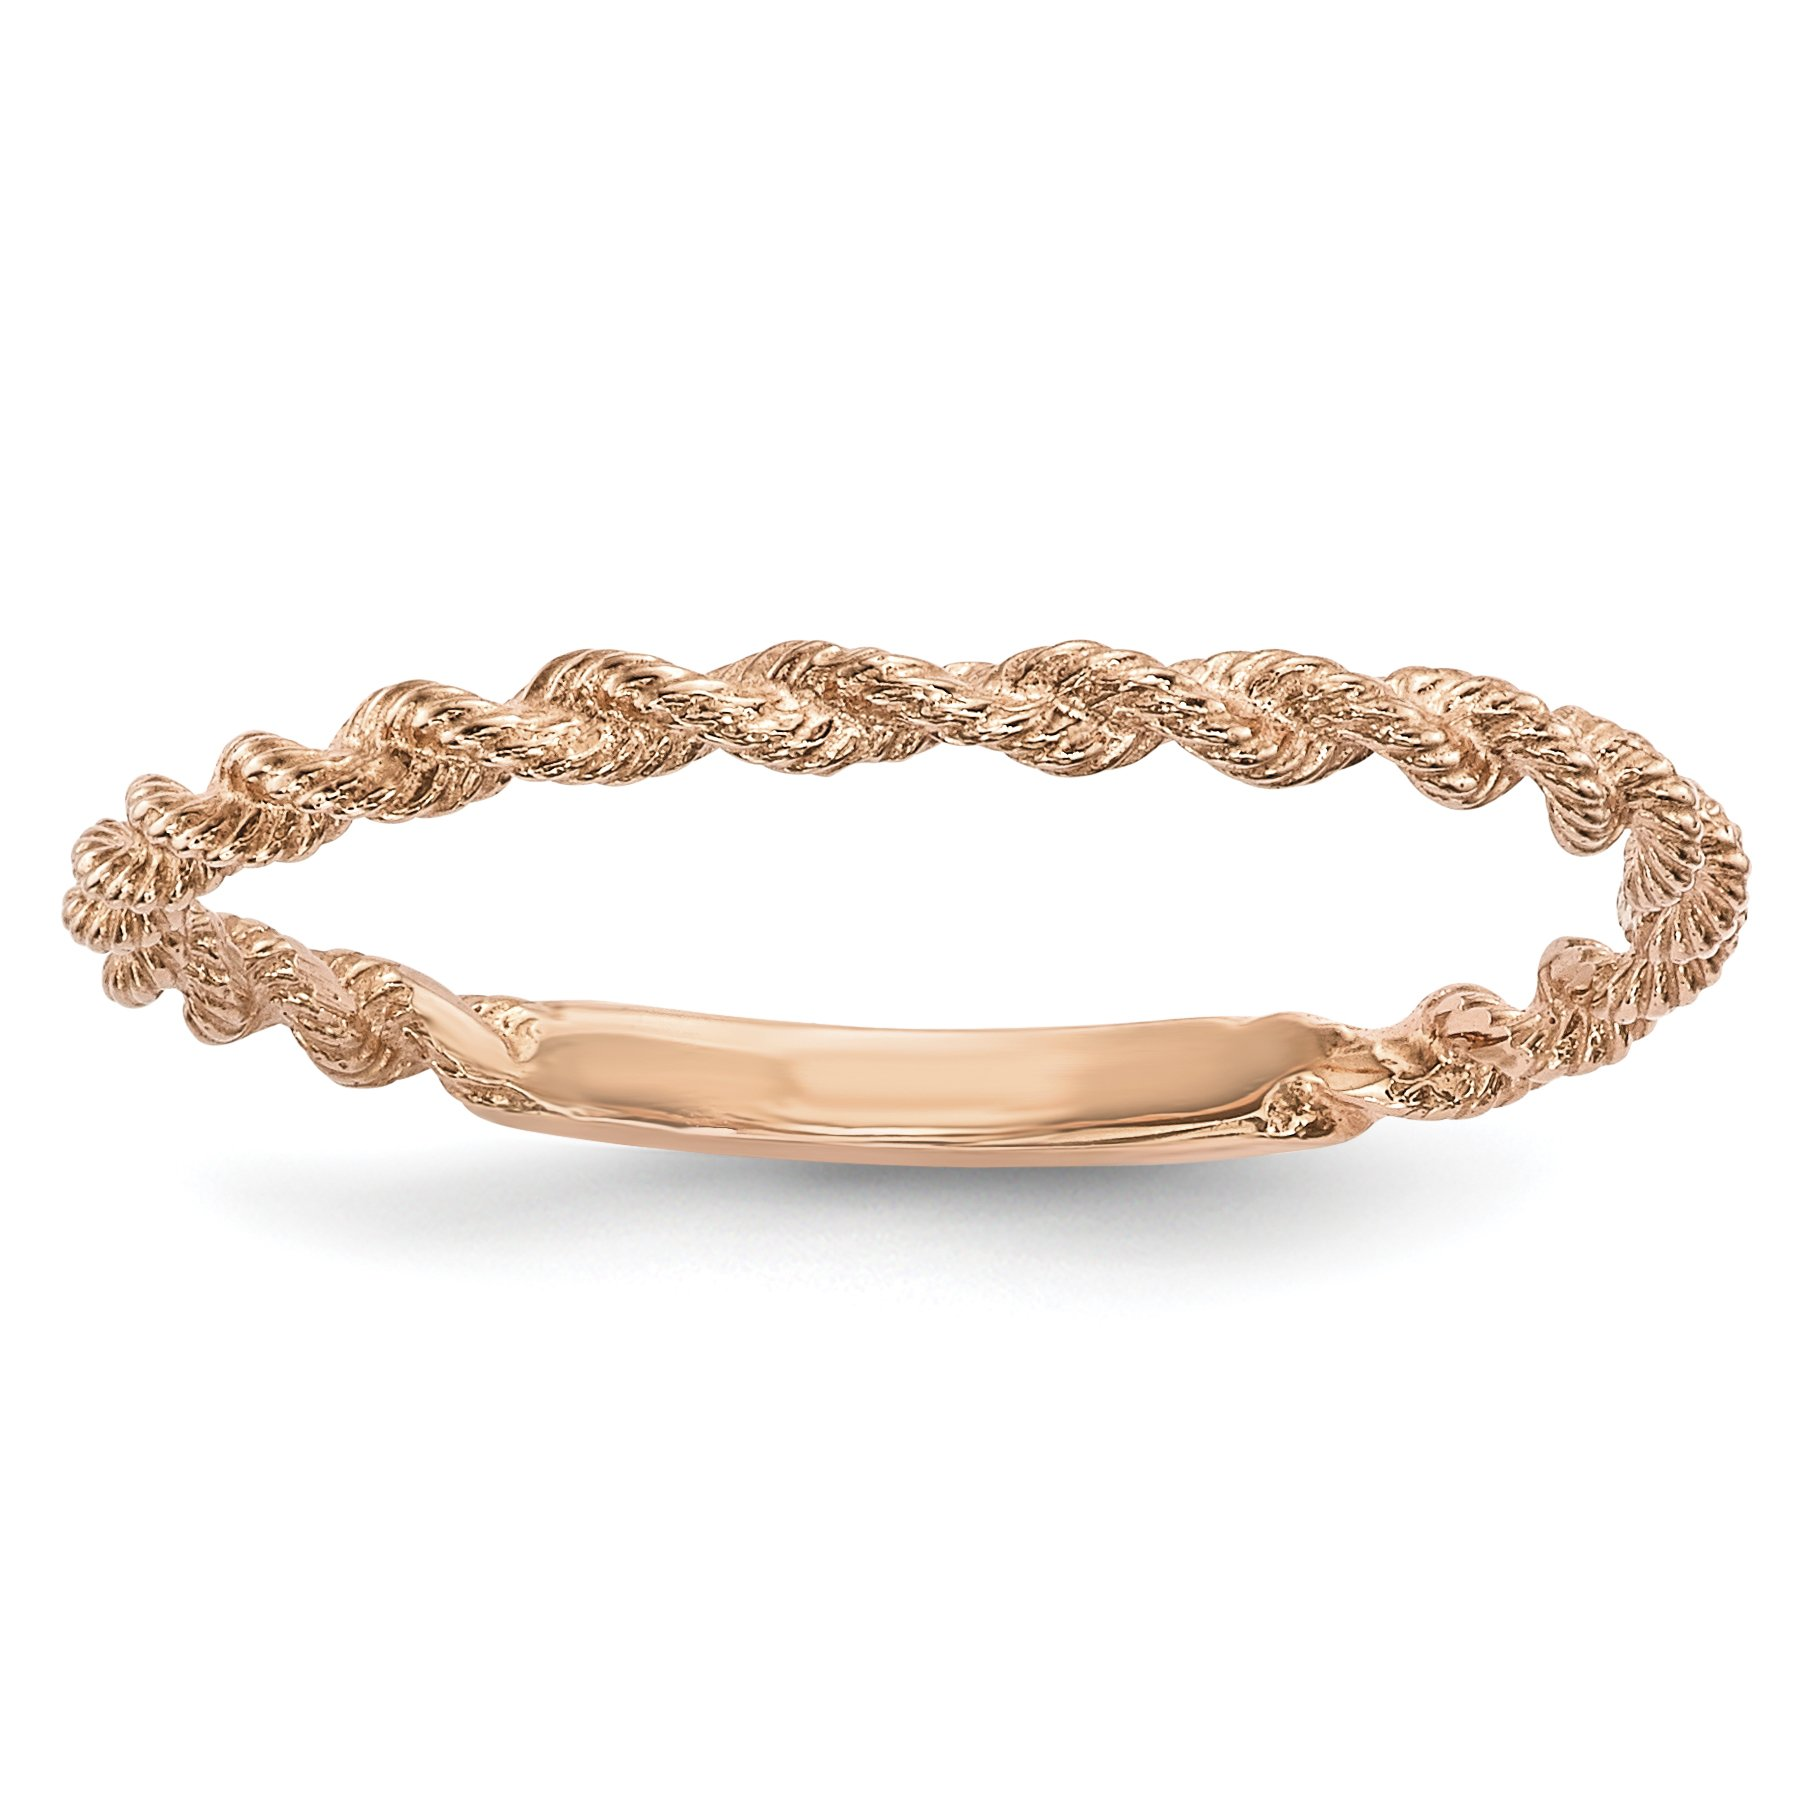 ICE CARATS 14k Rose Gold Twisted Rope Band Ring Size 7.50 Fine Jewelry Gift Set For Women Heart